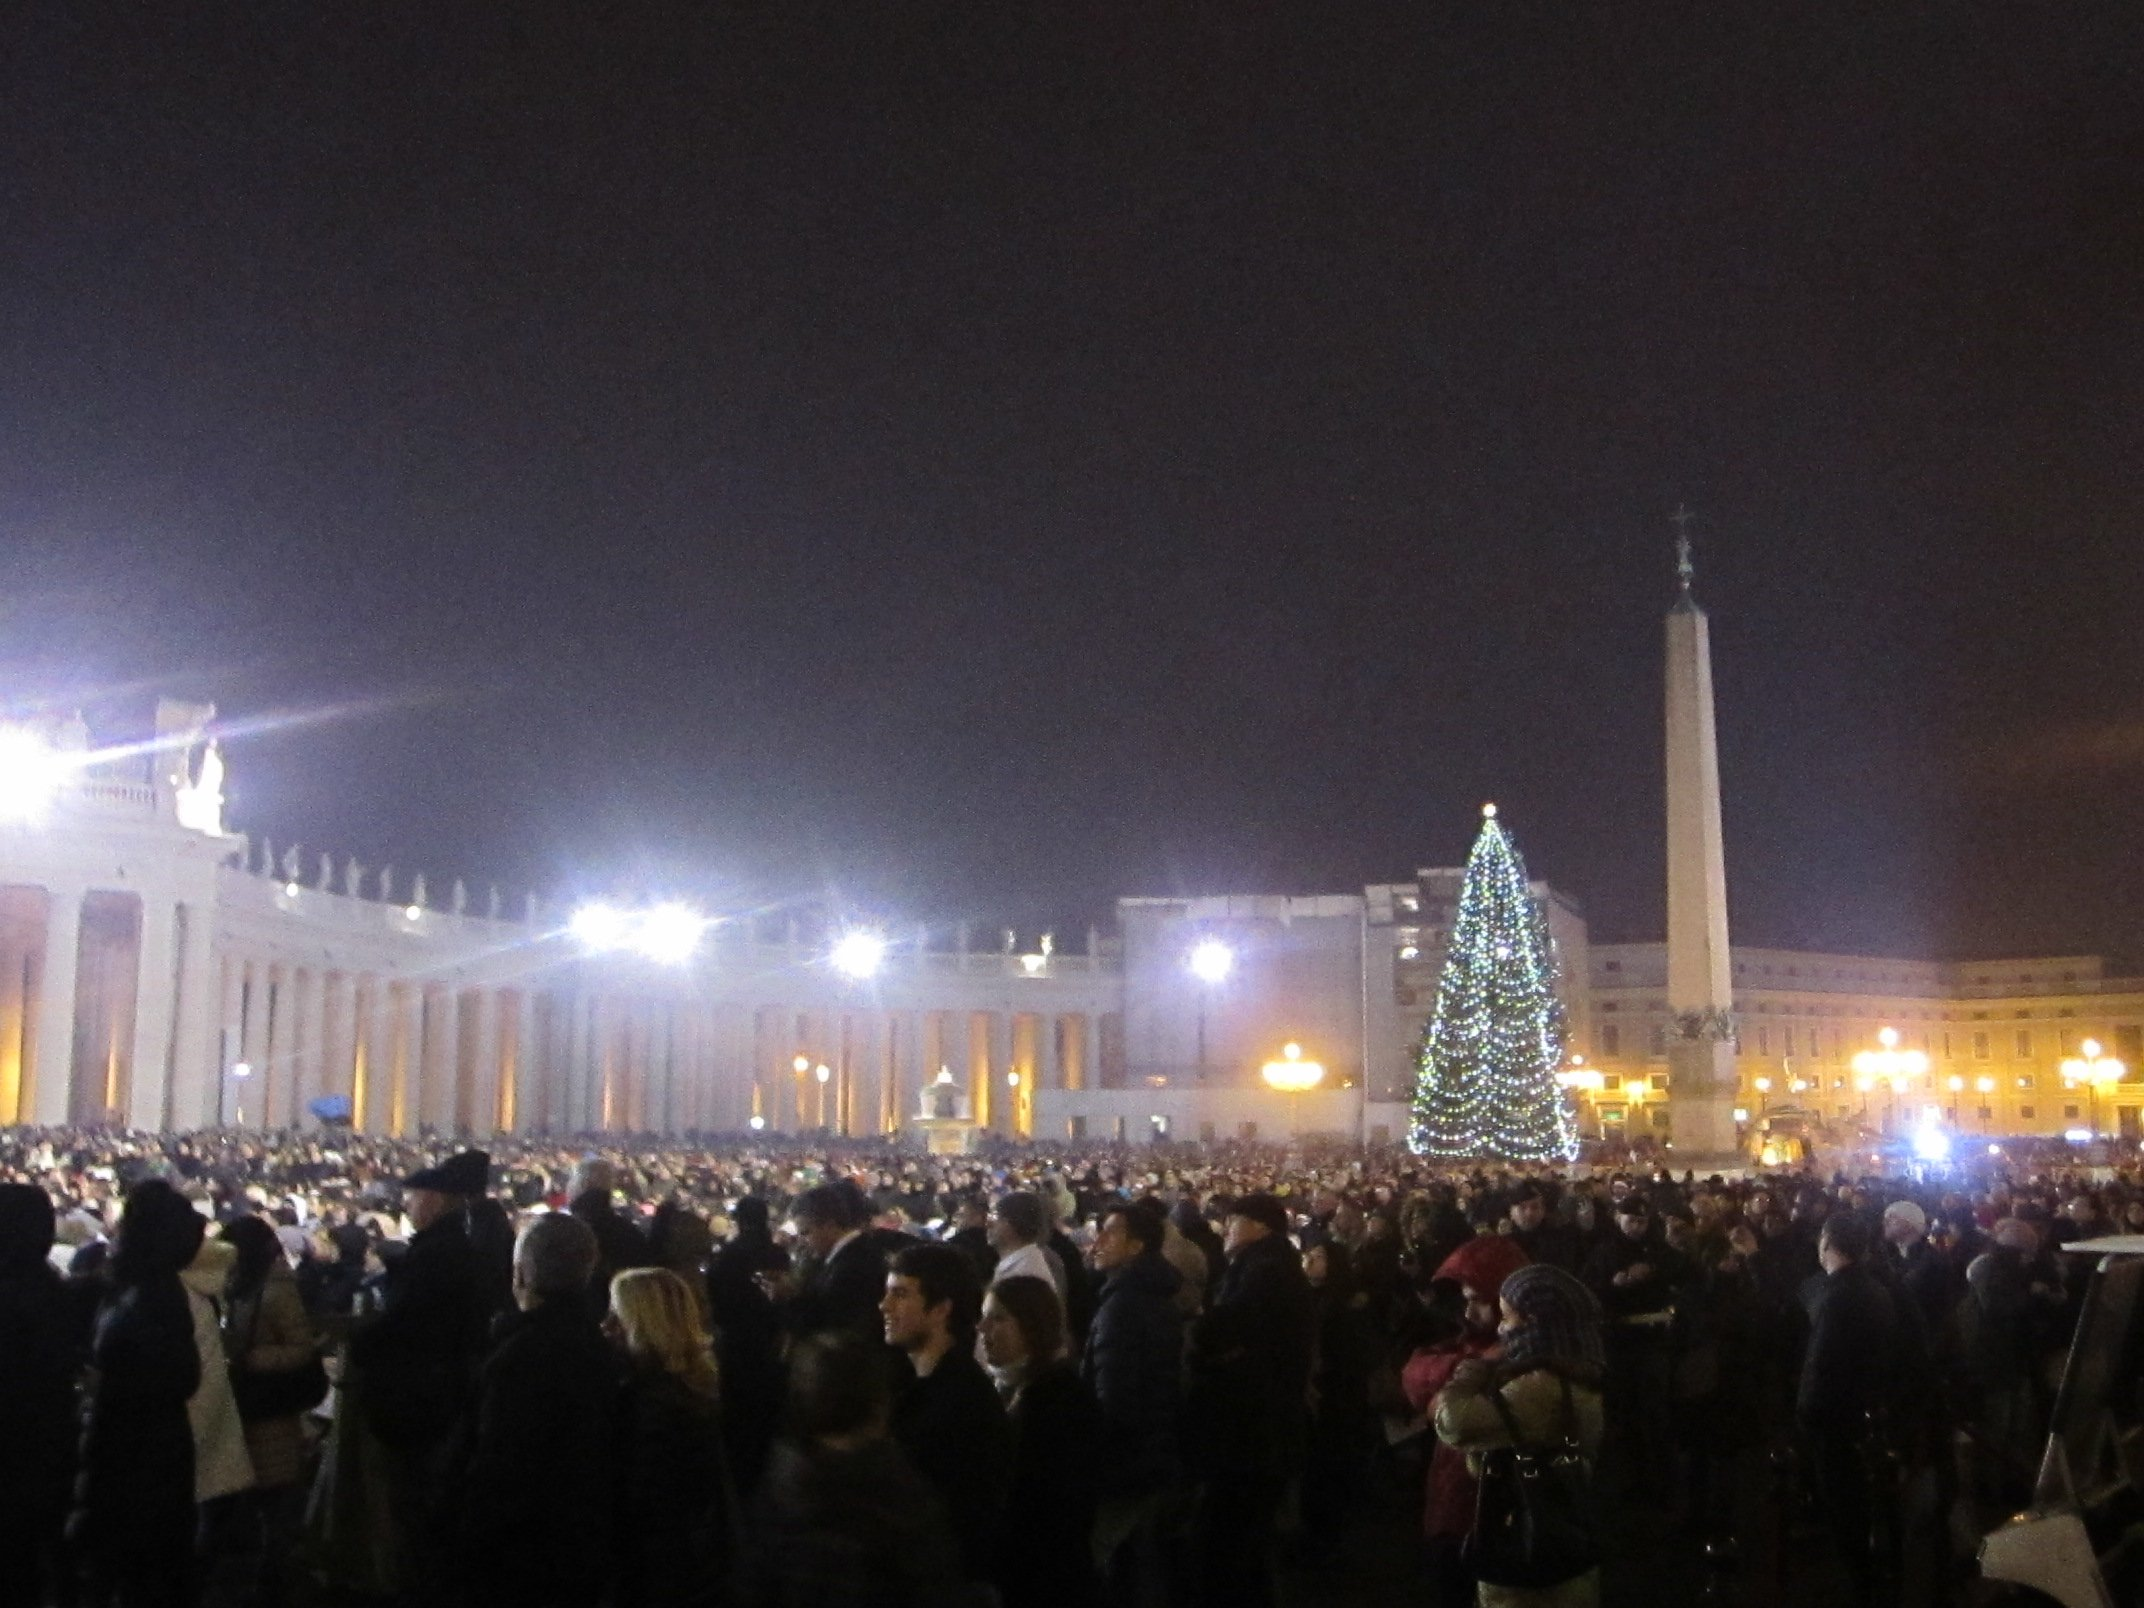 Midnight Mass in St. Peter's Square